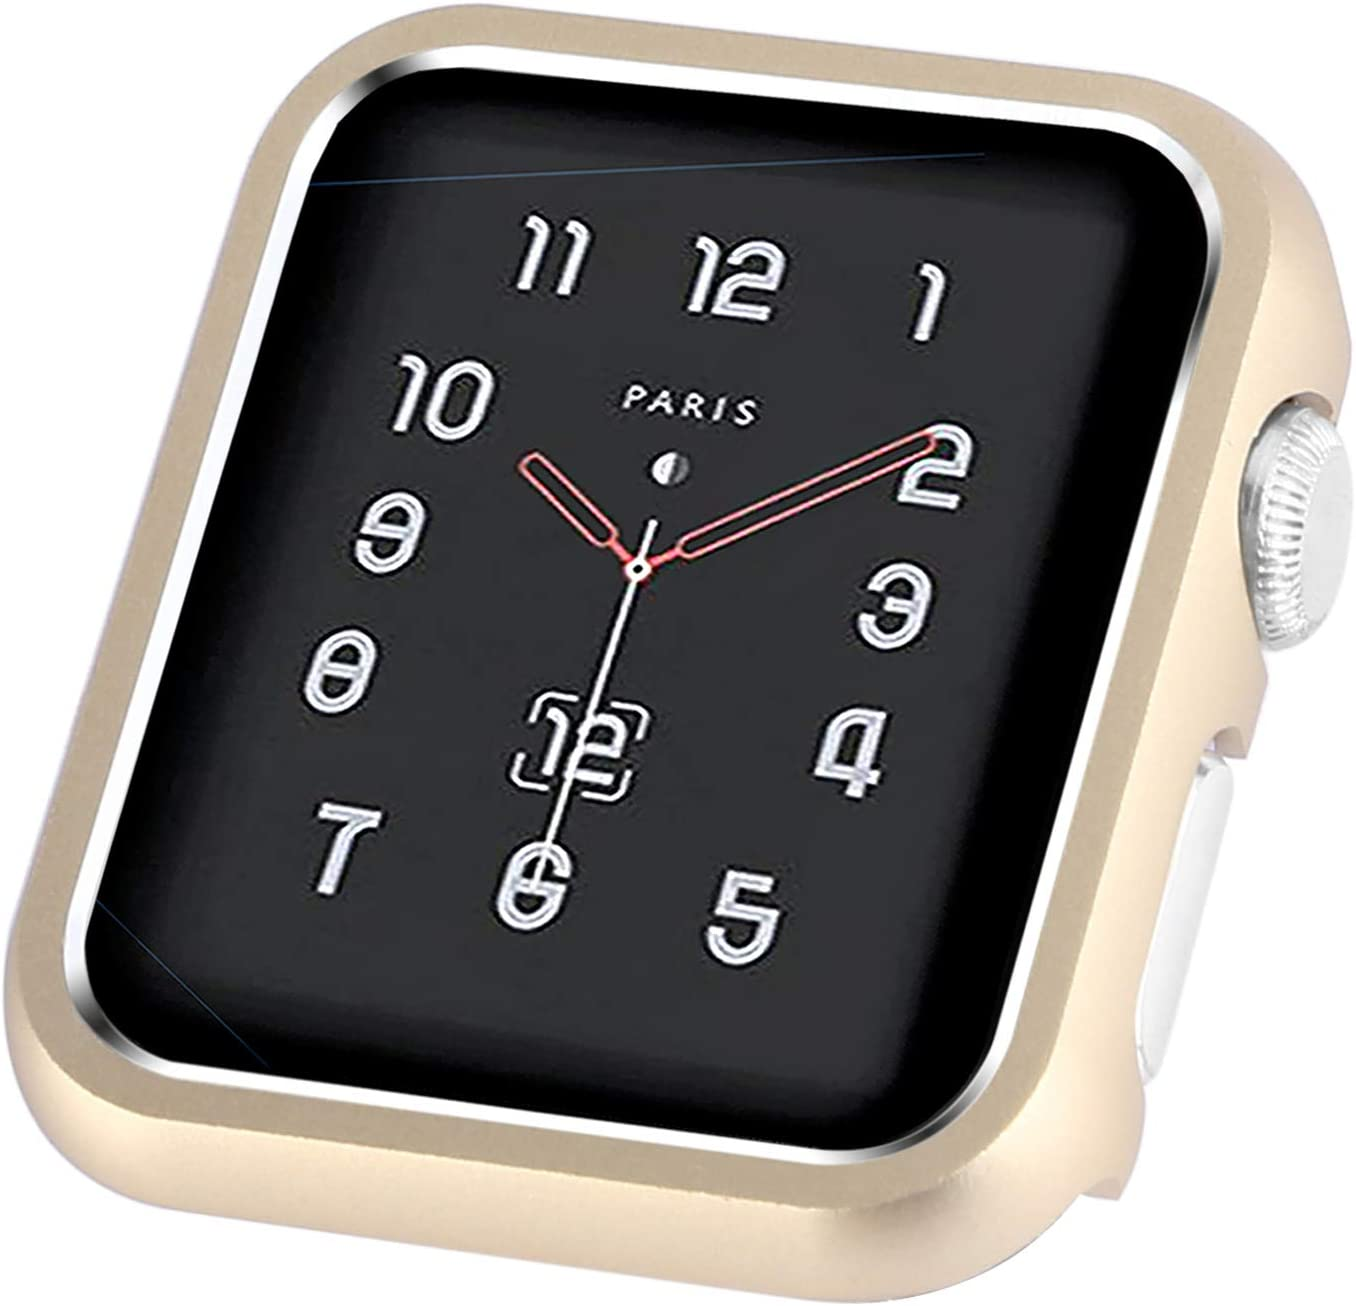 CooBES Compatible with Apple Watch Case 38mm 42mm, Metal Bumper Protective Cover Aluminum Alloy Frame Bling Shiny Protector Compatible iWatch Series 3/2/1(Matte Gold, 38mm)